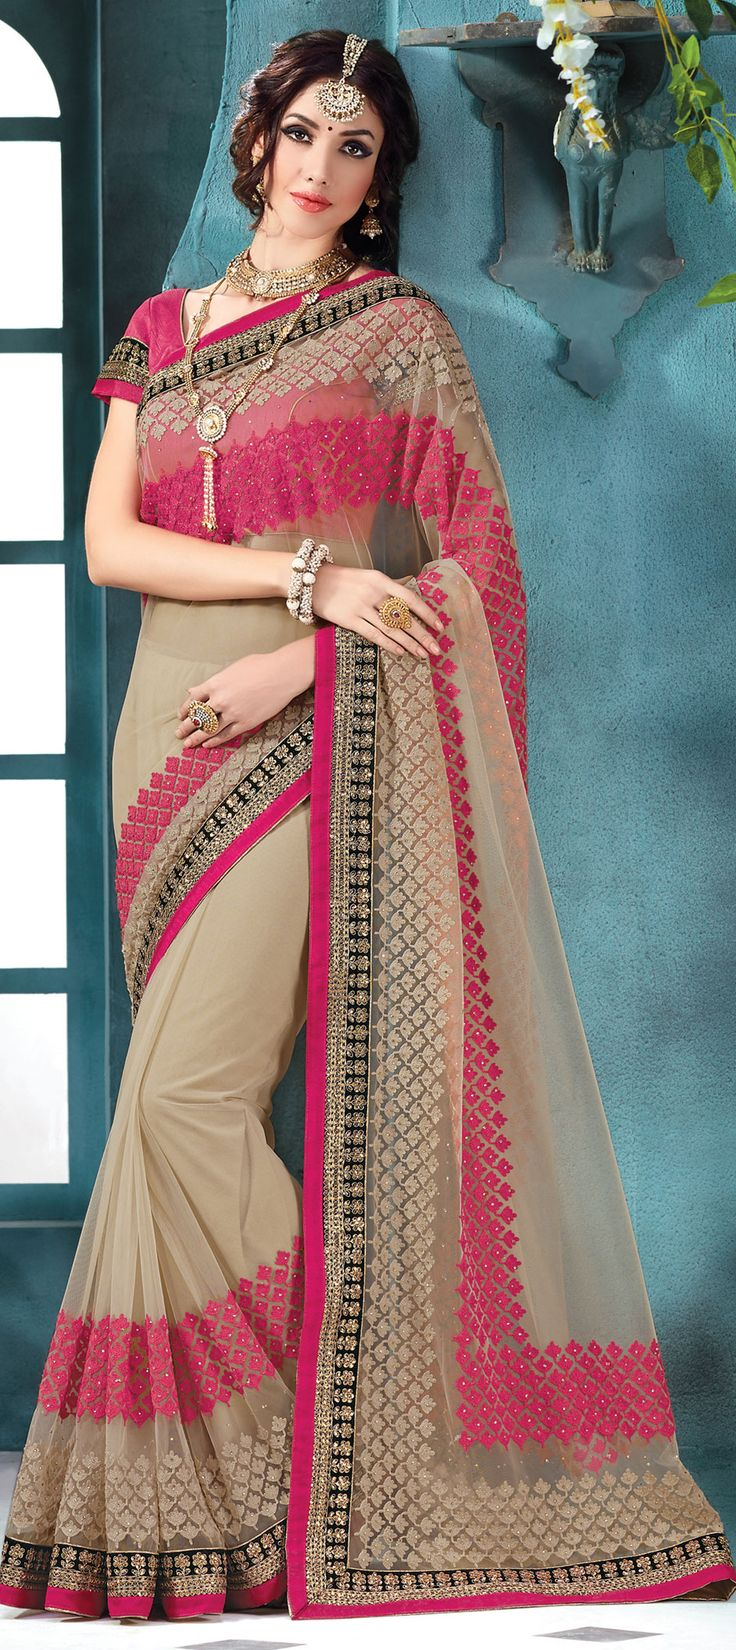 Beige and Brown color family Embroidered Sarees, Party Wear Sarees with matching unstitched blouse.